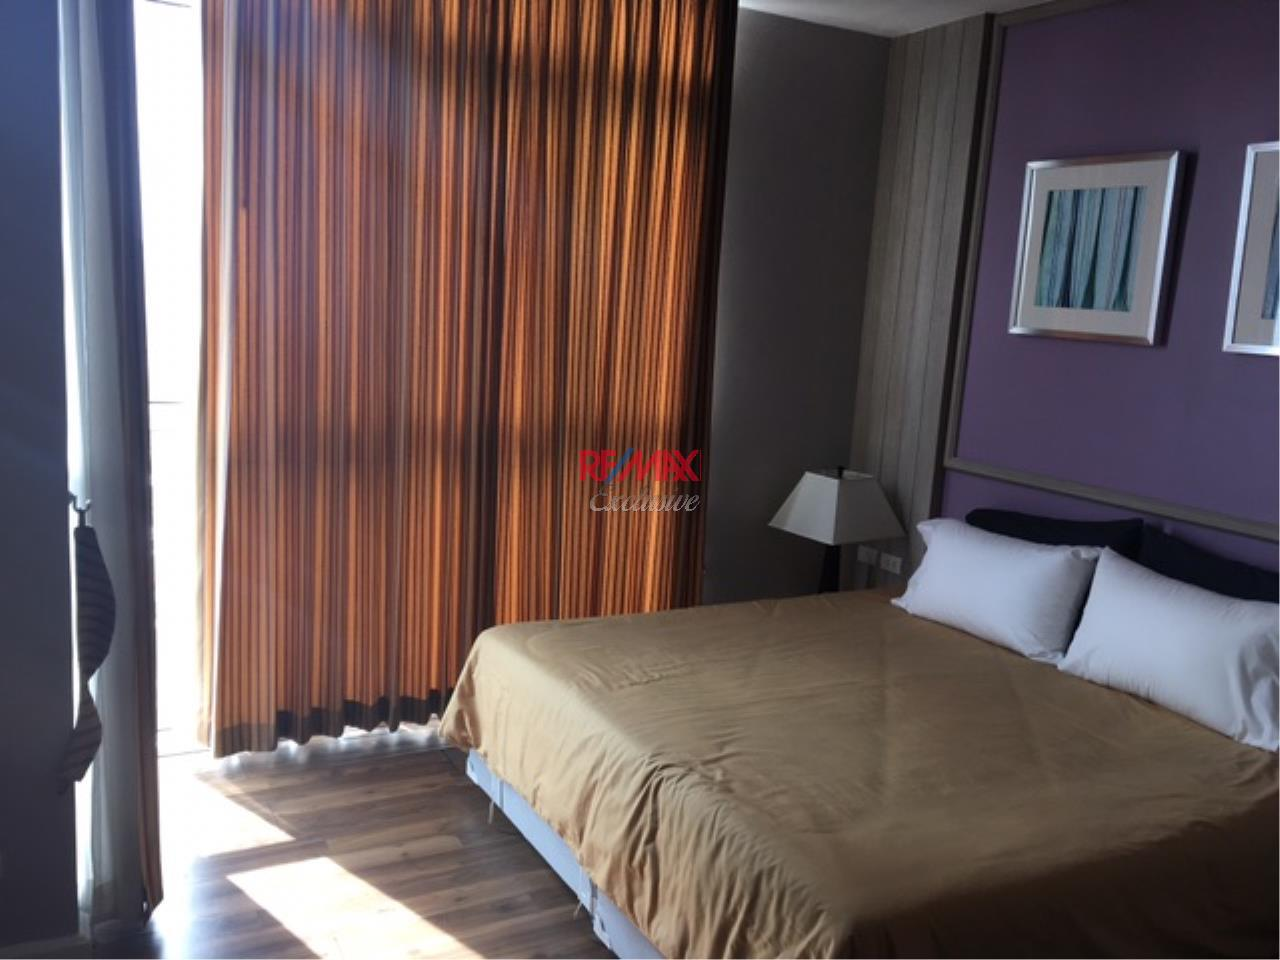 RE/MAX Exclusive Agency's The BLOOM, Sukhumvit 71.,2 Bedroom, 59 Sqm., Fully-Furnished, EXCLUSIVE UNIT, TOP FLOOR for RENT !! 6